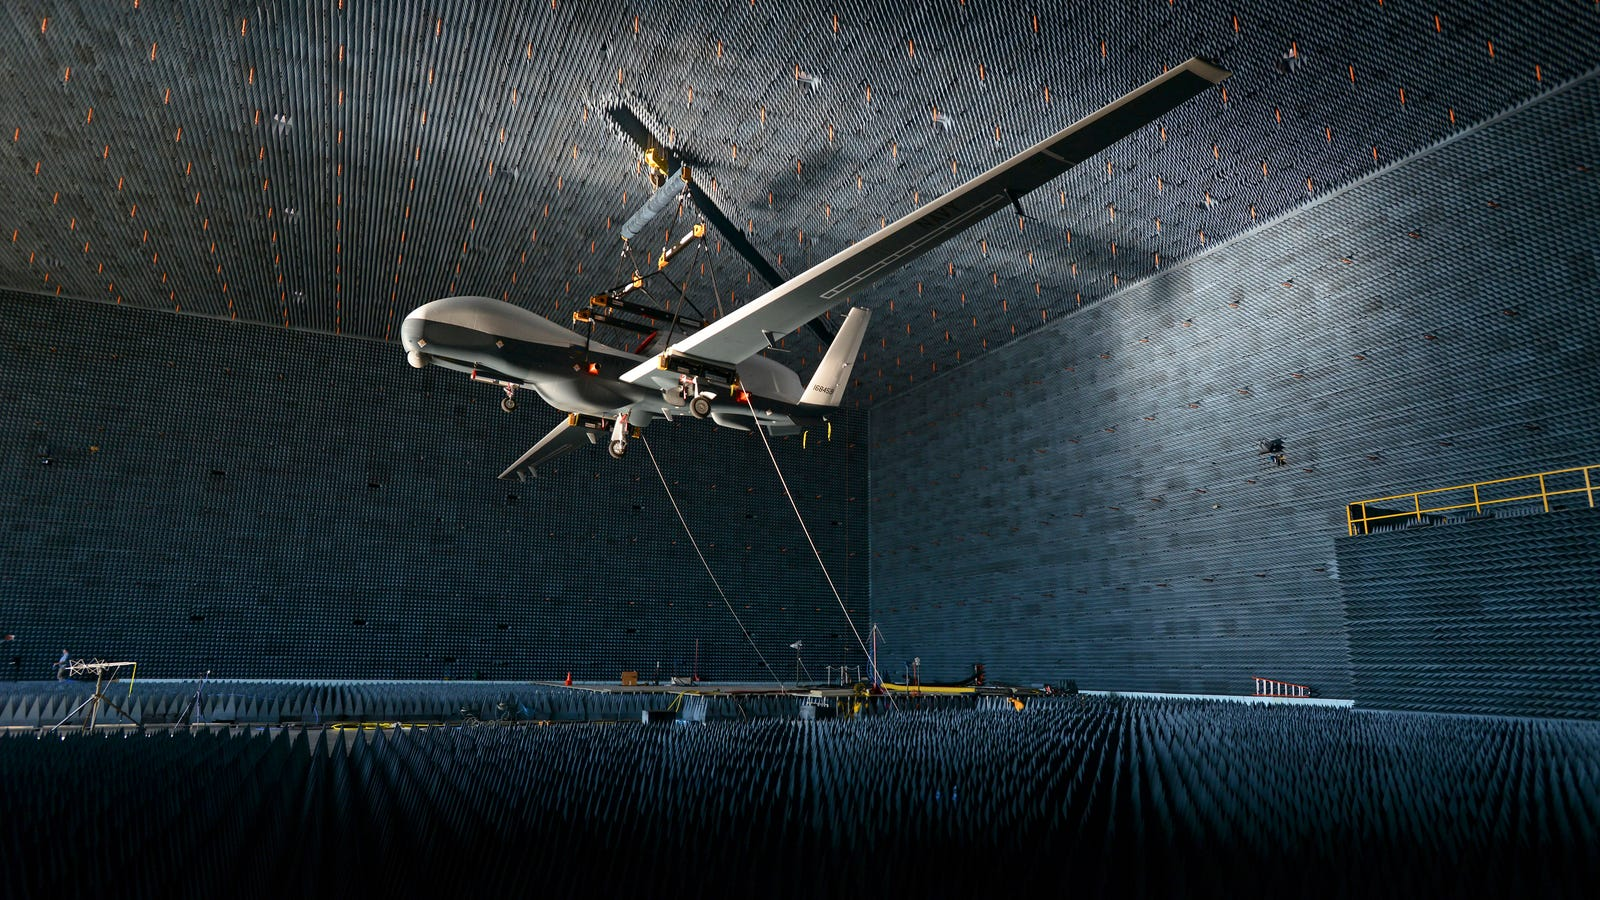 The Navy S Mq 4c Triton Enters The Sci Fi Realm Of The